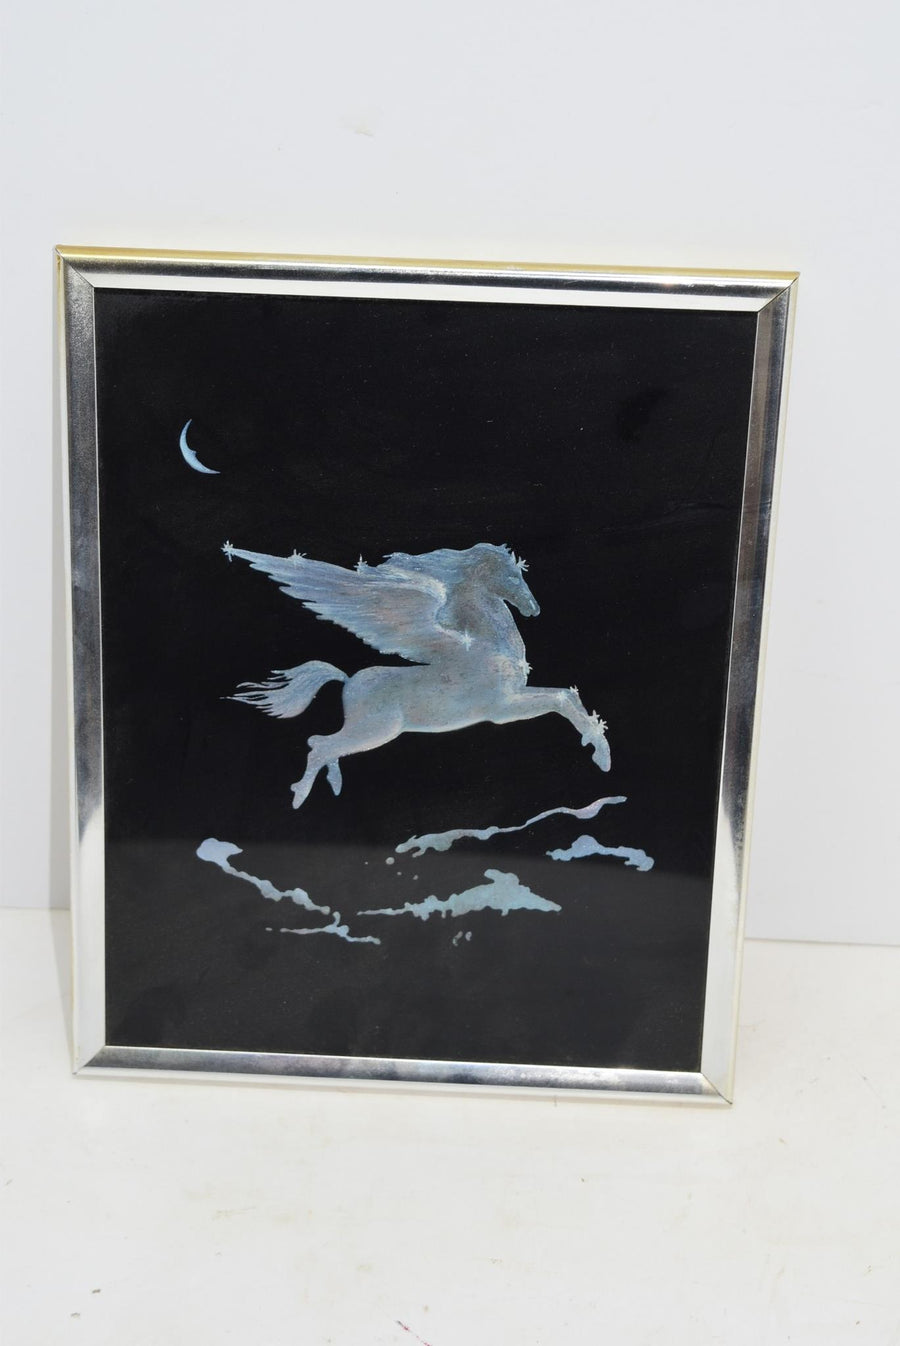 Kafka Foil Artwork 1985 Vintage Decor Pegasus Unique Silver Frame She Shed